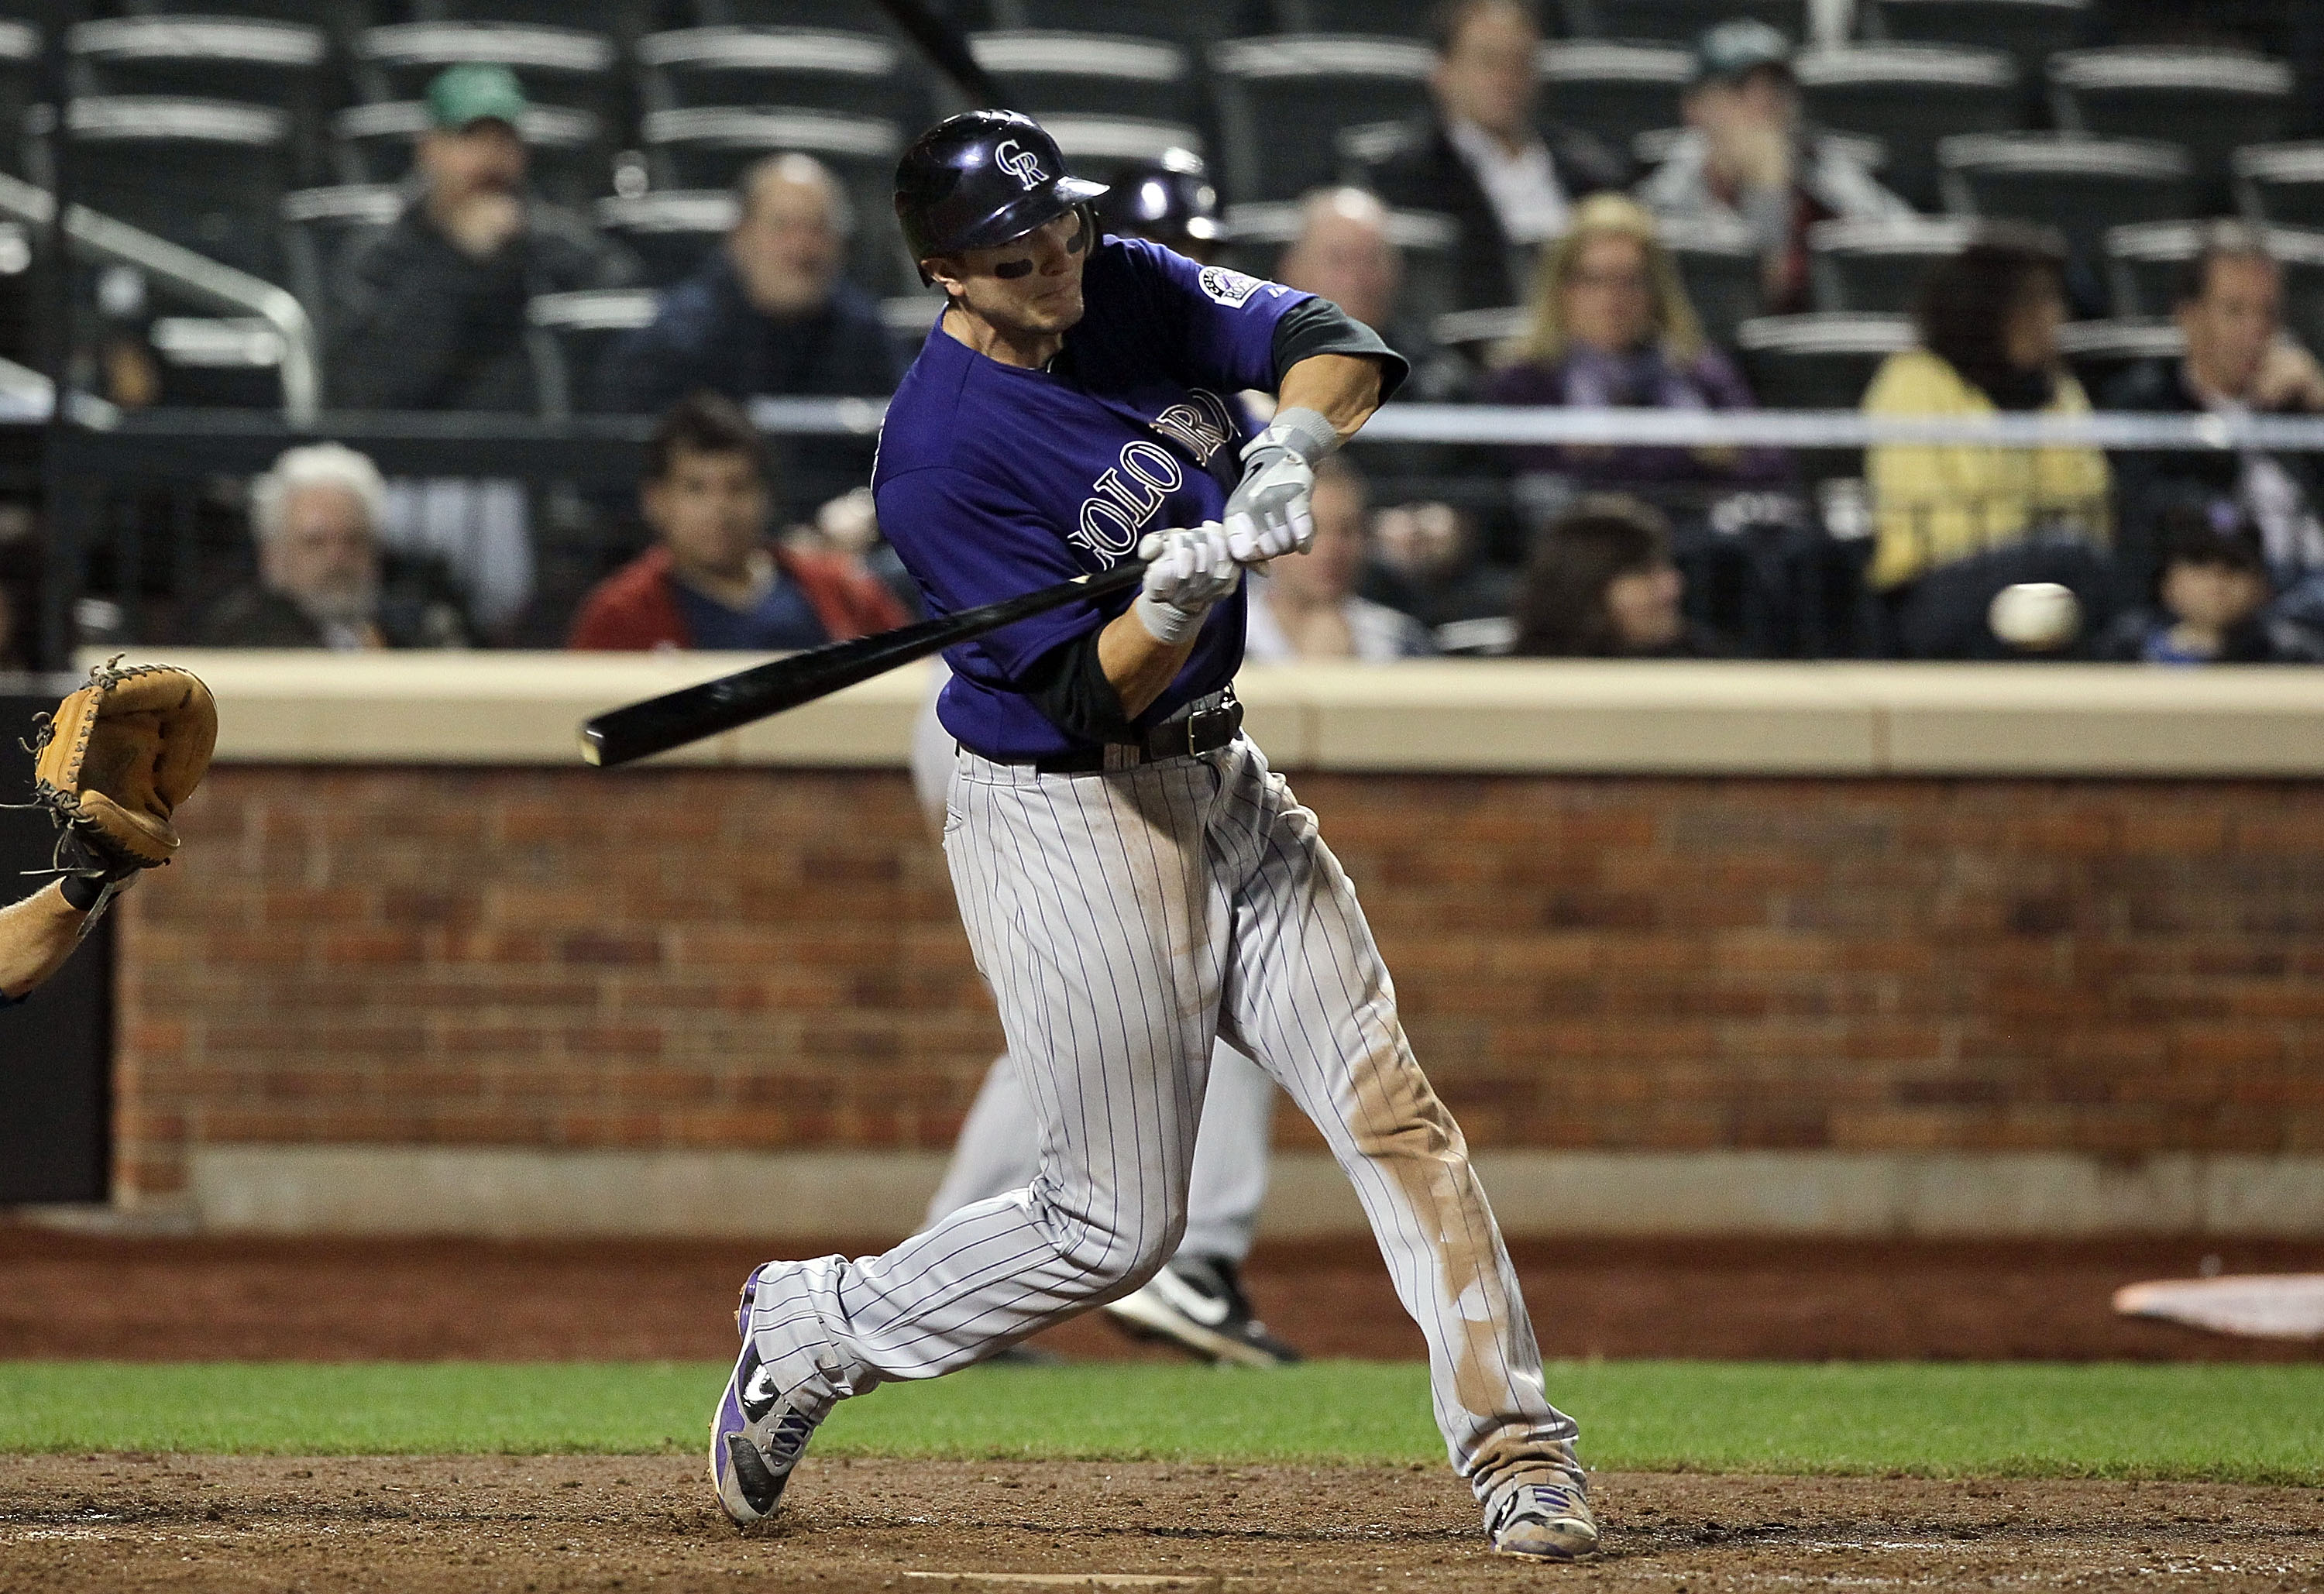 Troy Tulowitzki blasts one of his four home runs during the Rockies four-game visit to Citi Field, where they swept the New York Mets